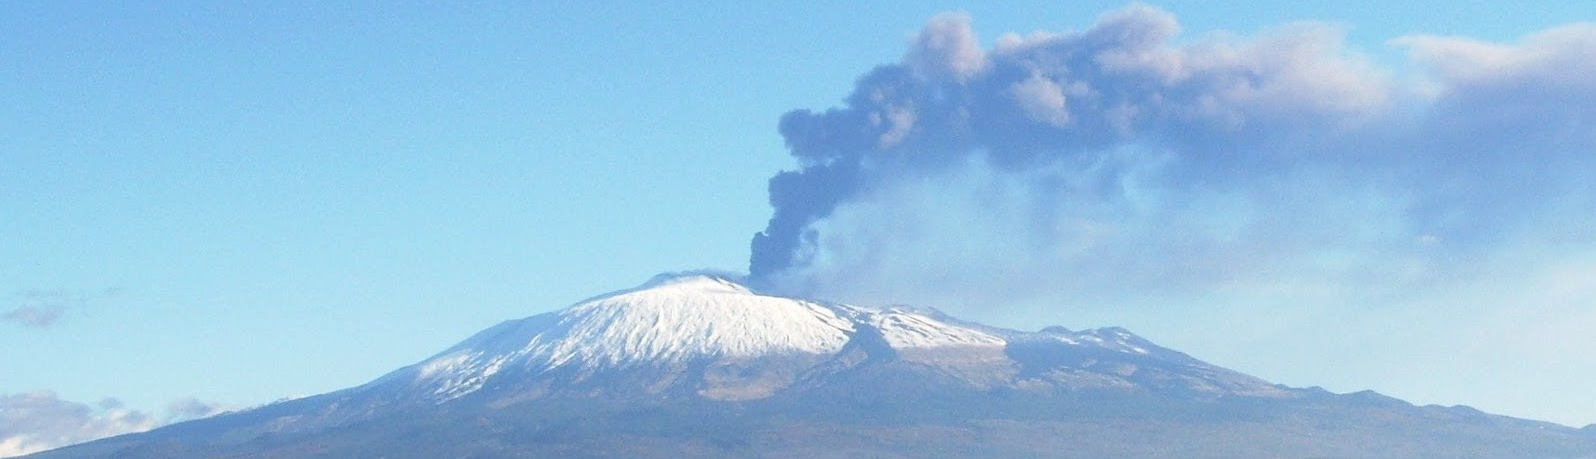 Etna en eruption